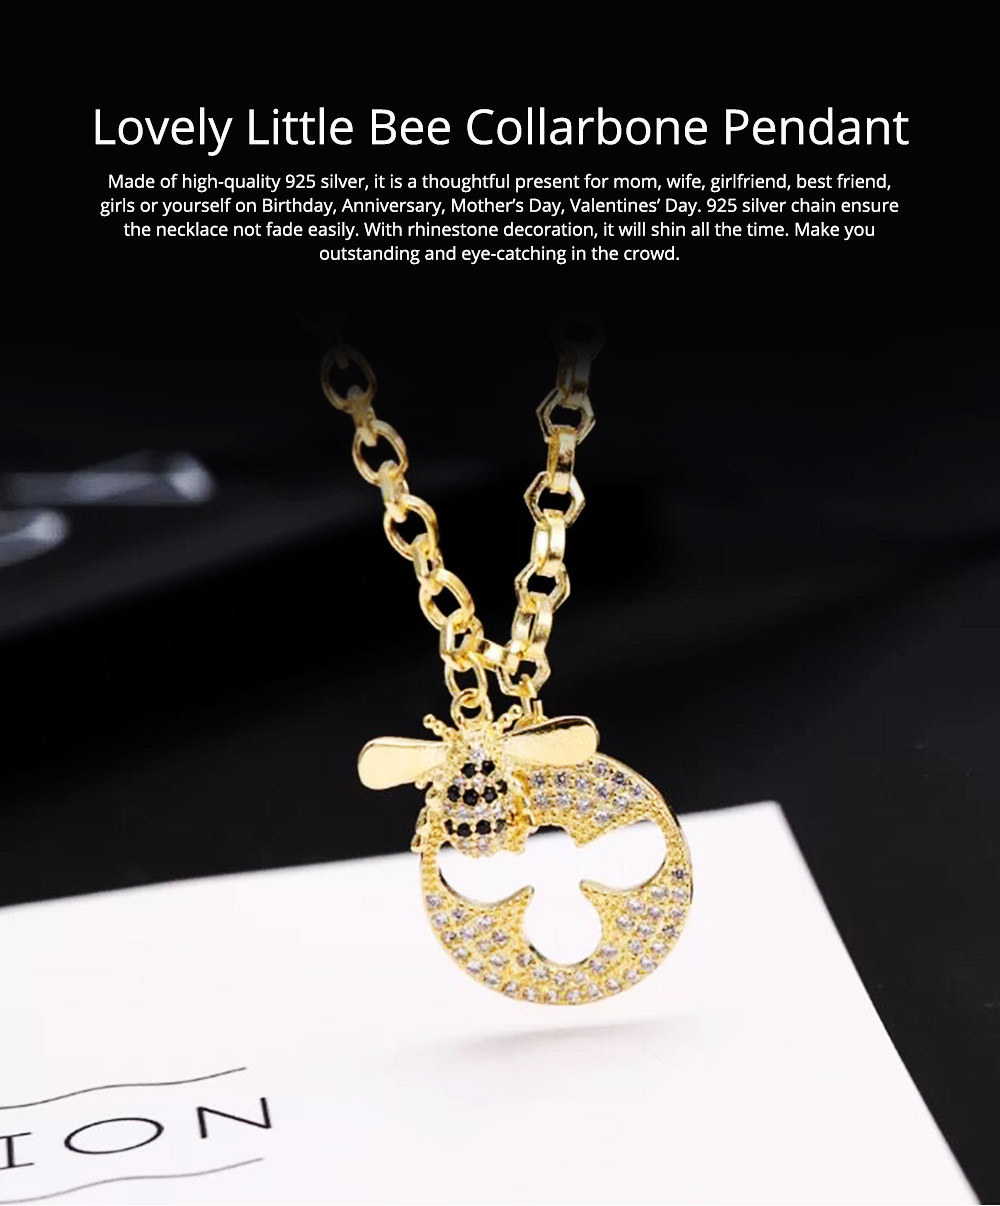 Lovely Little Bee Collarbone Pendant with Artificial Diamond, 925 Sterling Silver Chain with Pendant, Adjustable Dainty Necklace 0